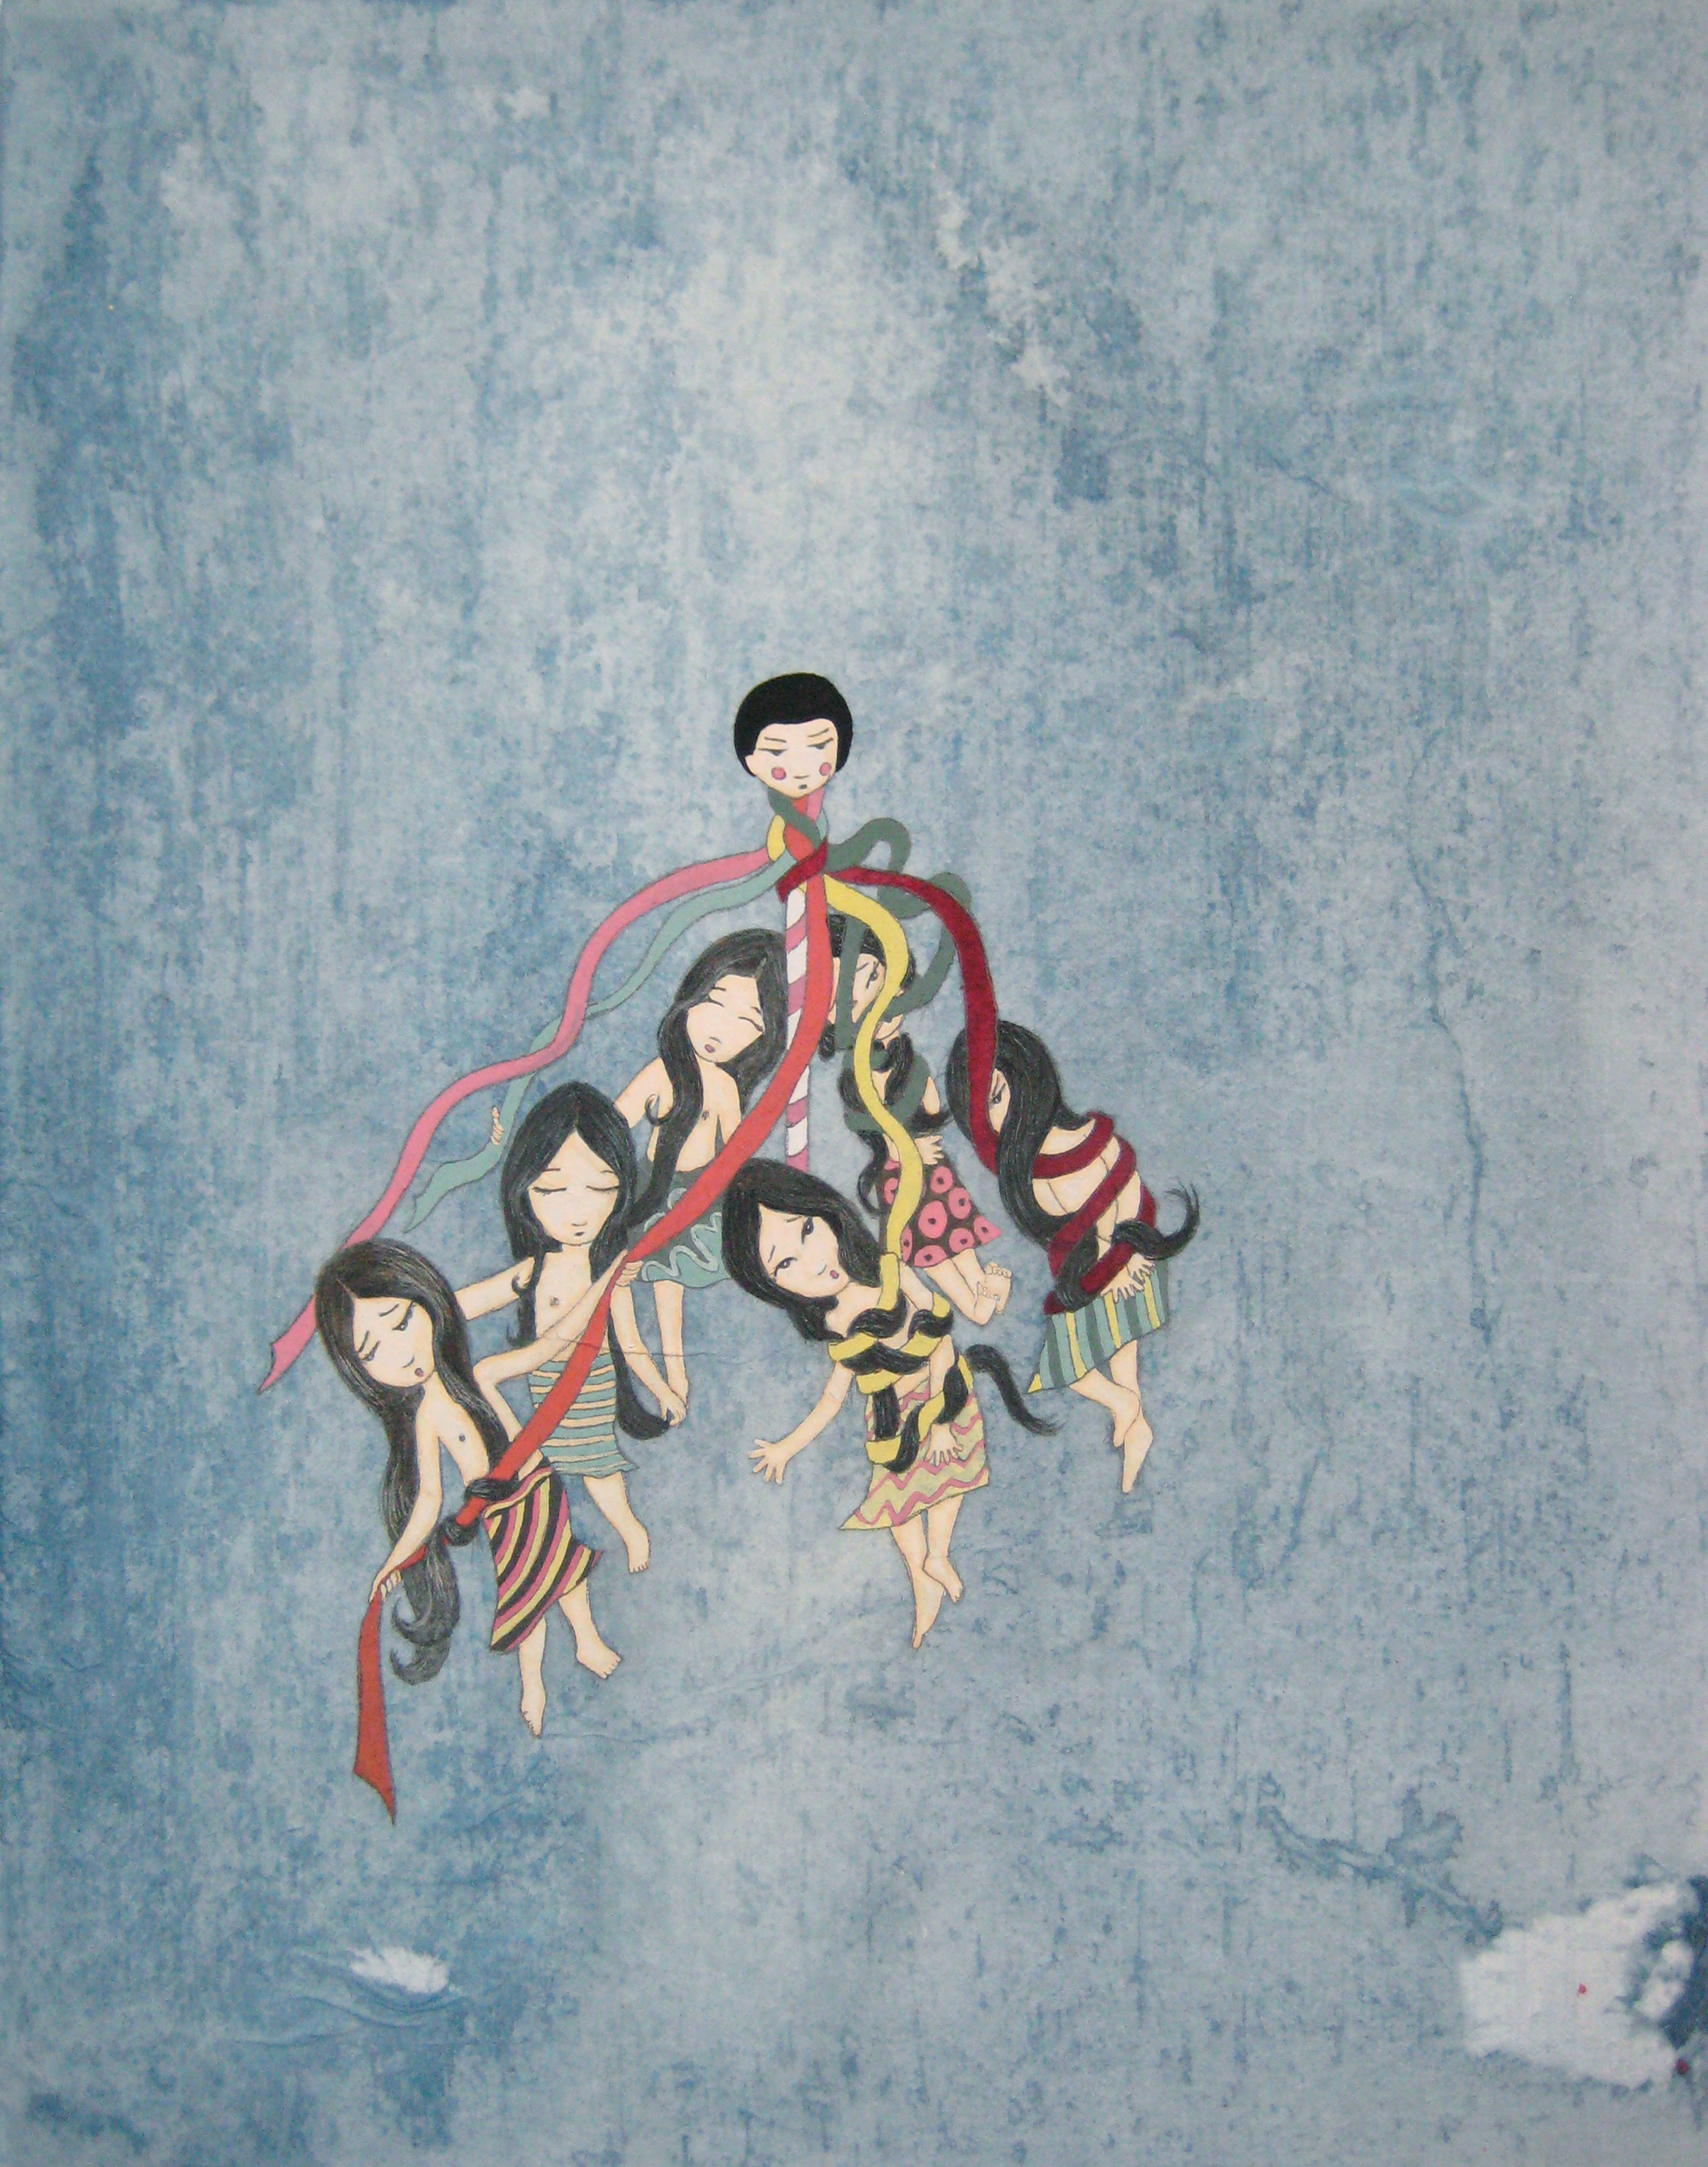 Kyung Jeon Karnival Maypole Long Hair, 2011 Watercolor, gouache, graphite on rice paper mounted on canvas and wood panel 14 x 11 inches  /  35.6 x 27.9 cm  /  KJe 2